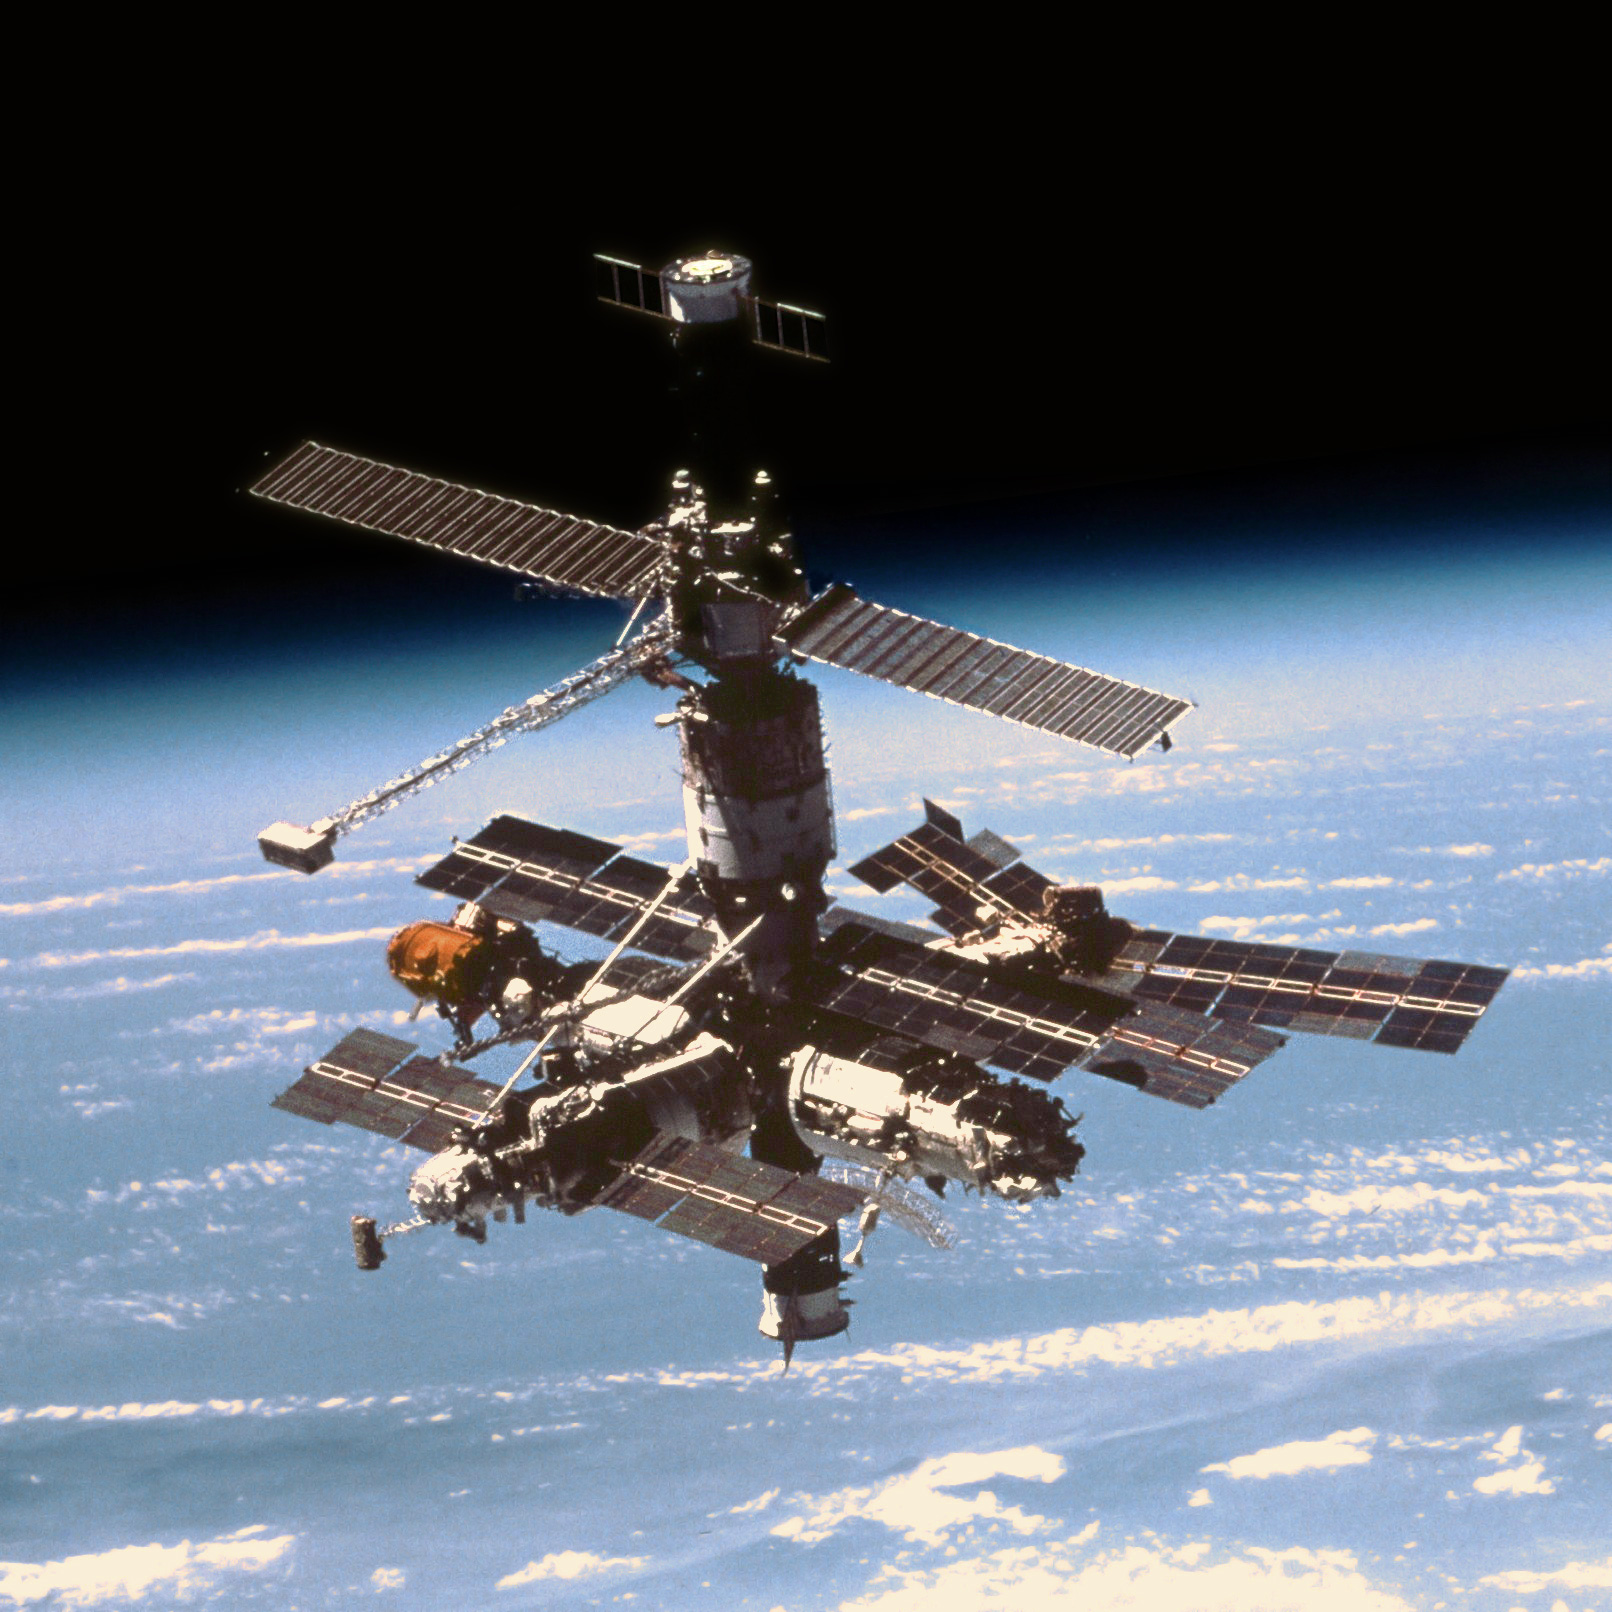 A Soyuz, bottom, docked to the Mir space station, as seen from the space shuttle Atlantis in 1997. Photo Credit: NASA